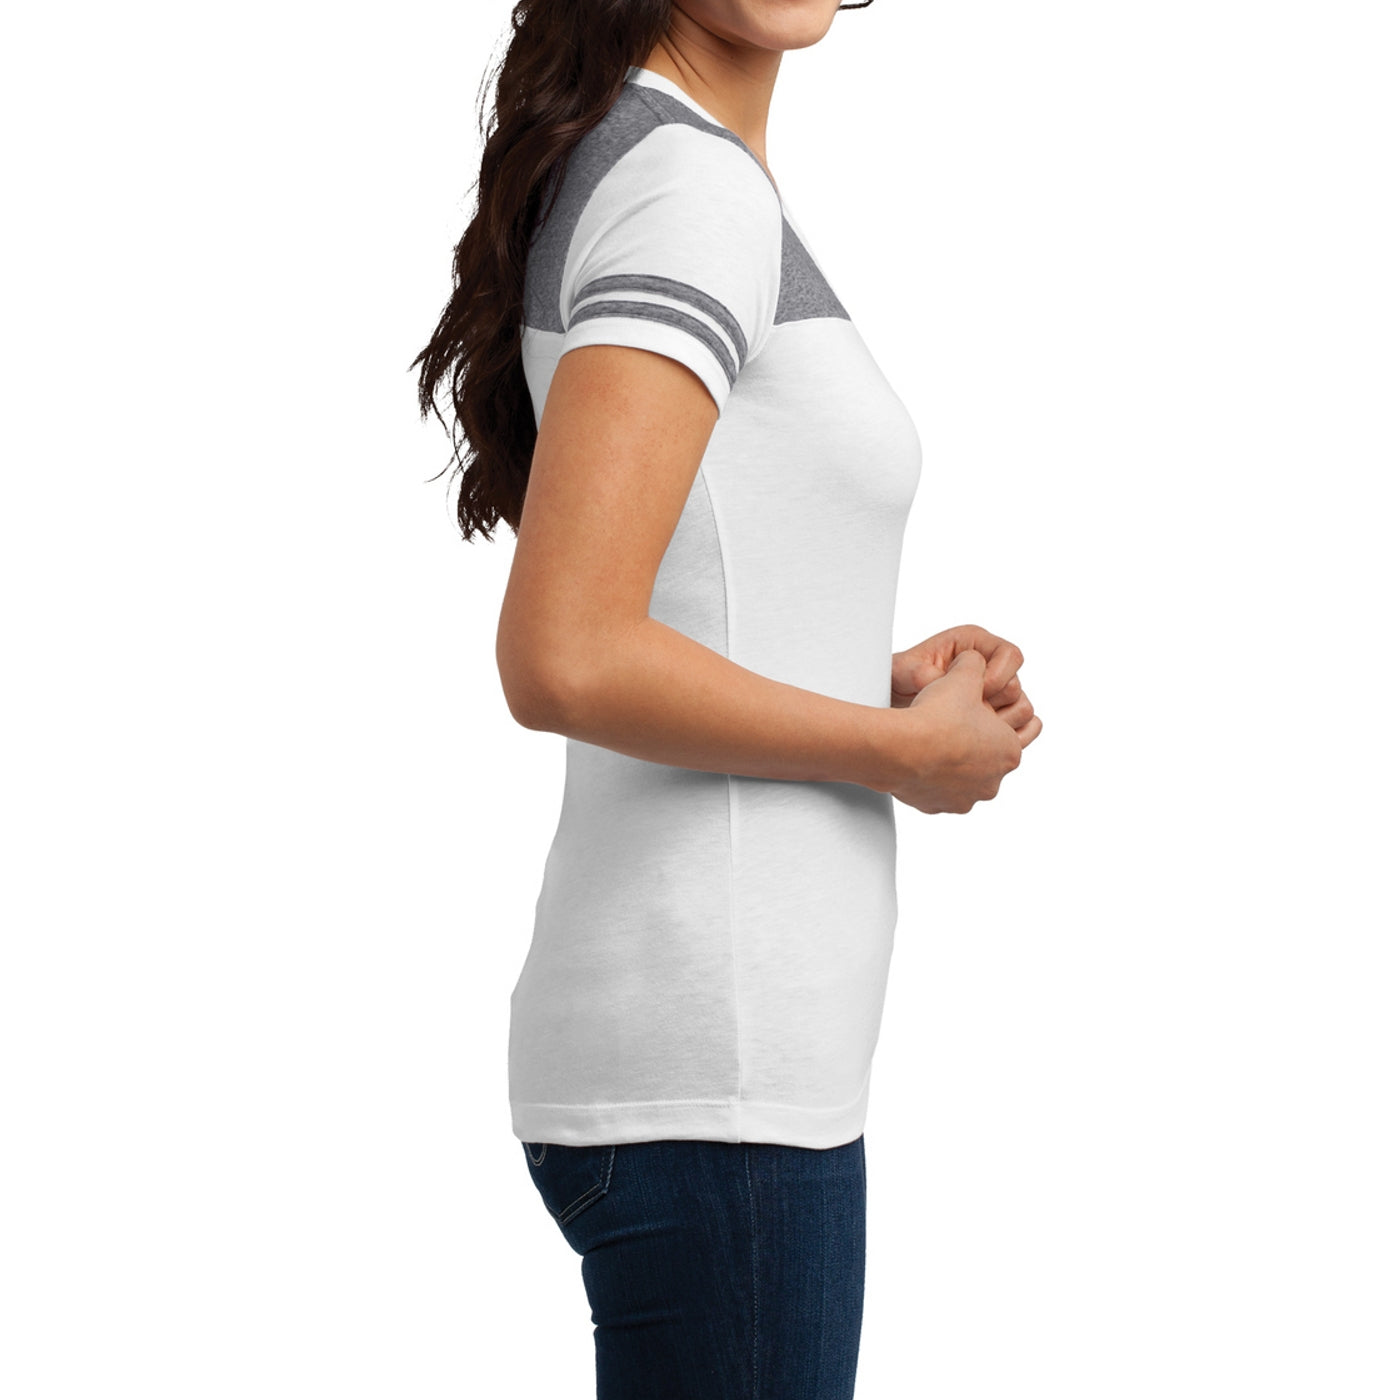 Women's Juniors Varsity V-Neck Tee - White/ Heathered Nickel